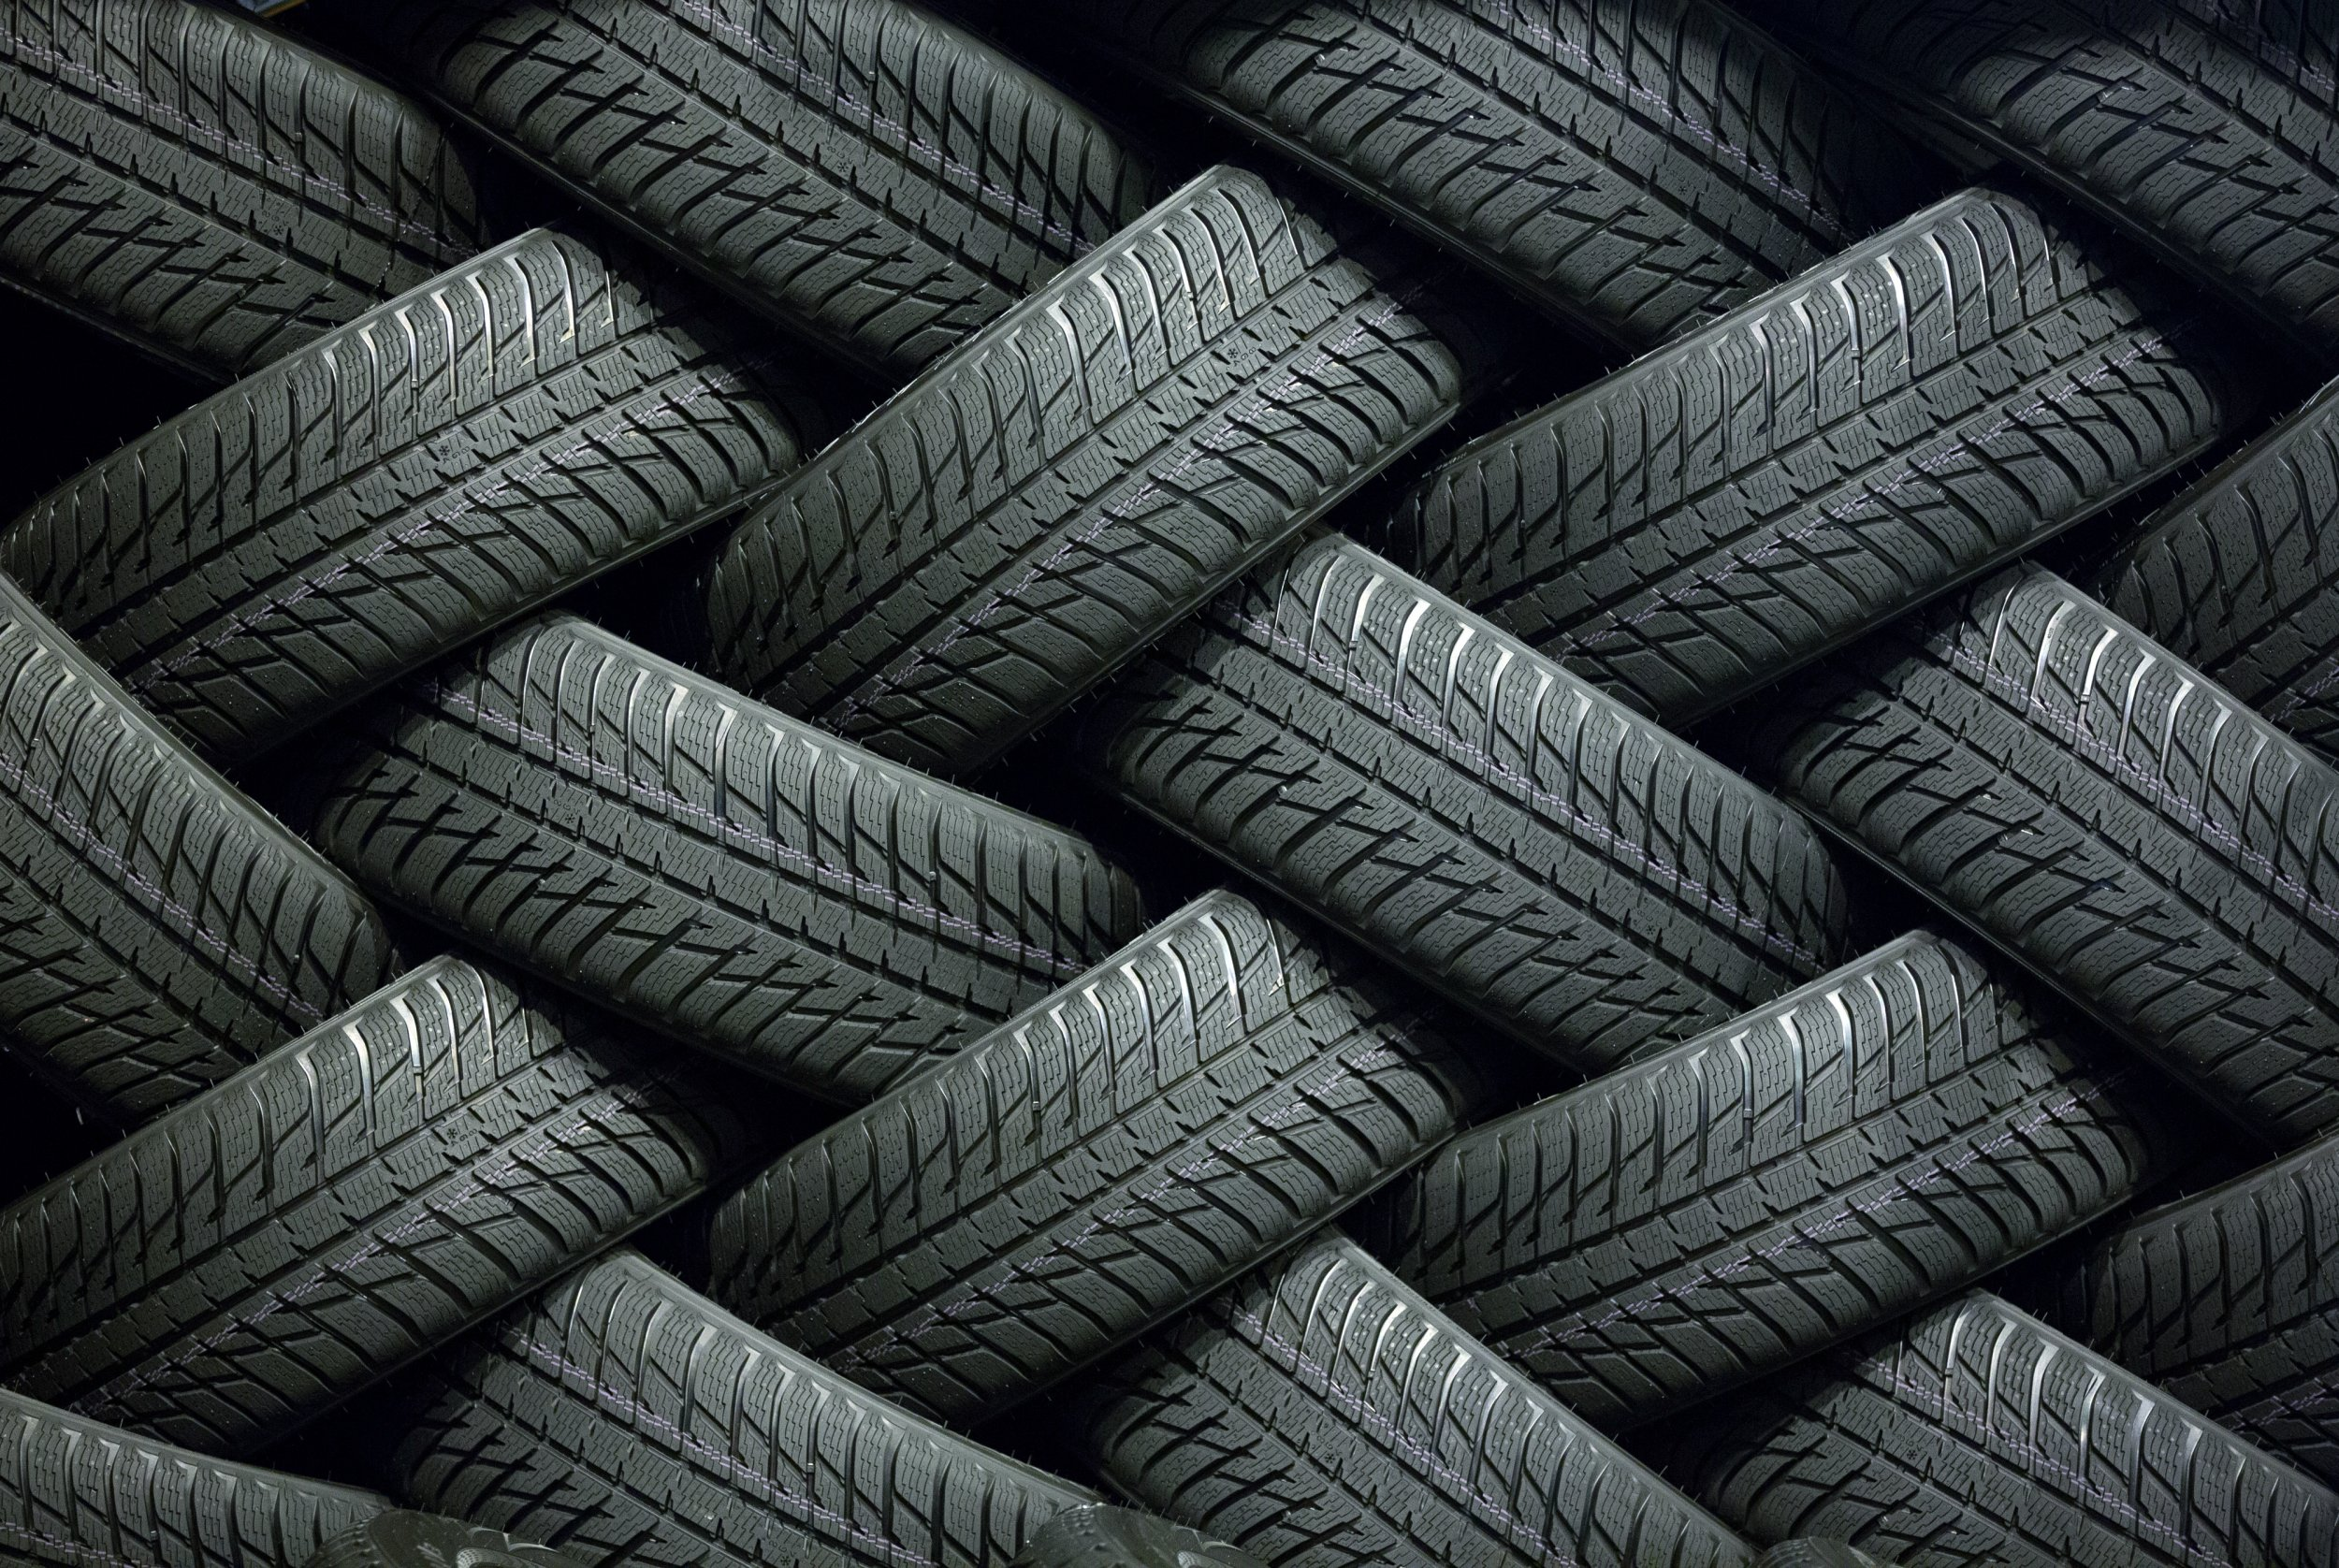 new eco friendly renewable tires stretch the boundaries of rubber